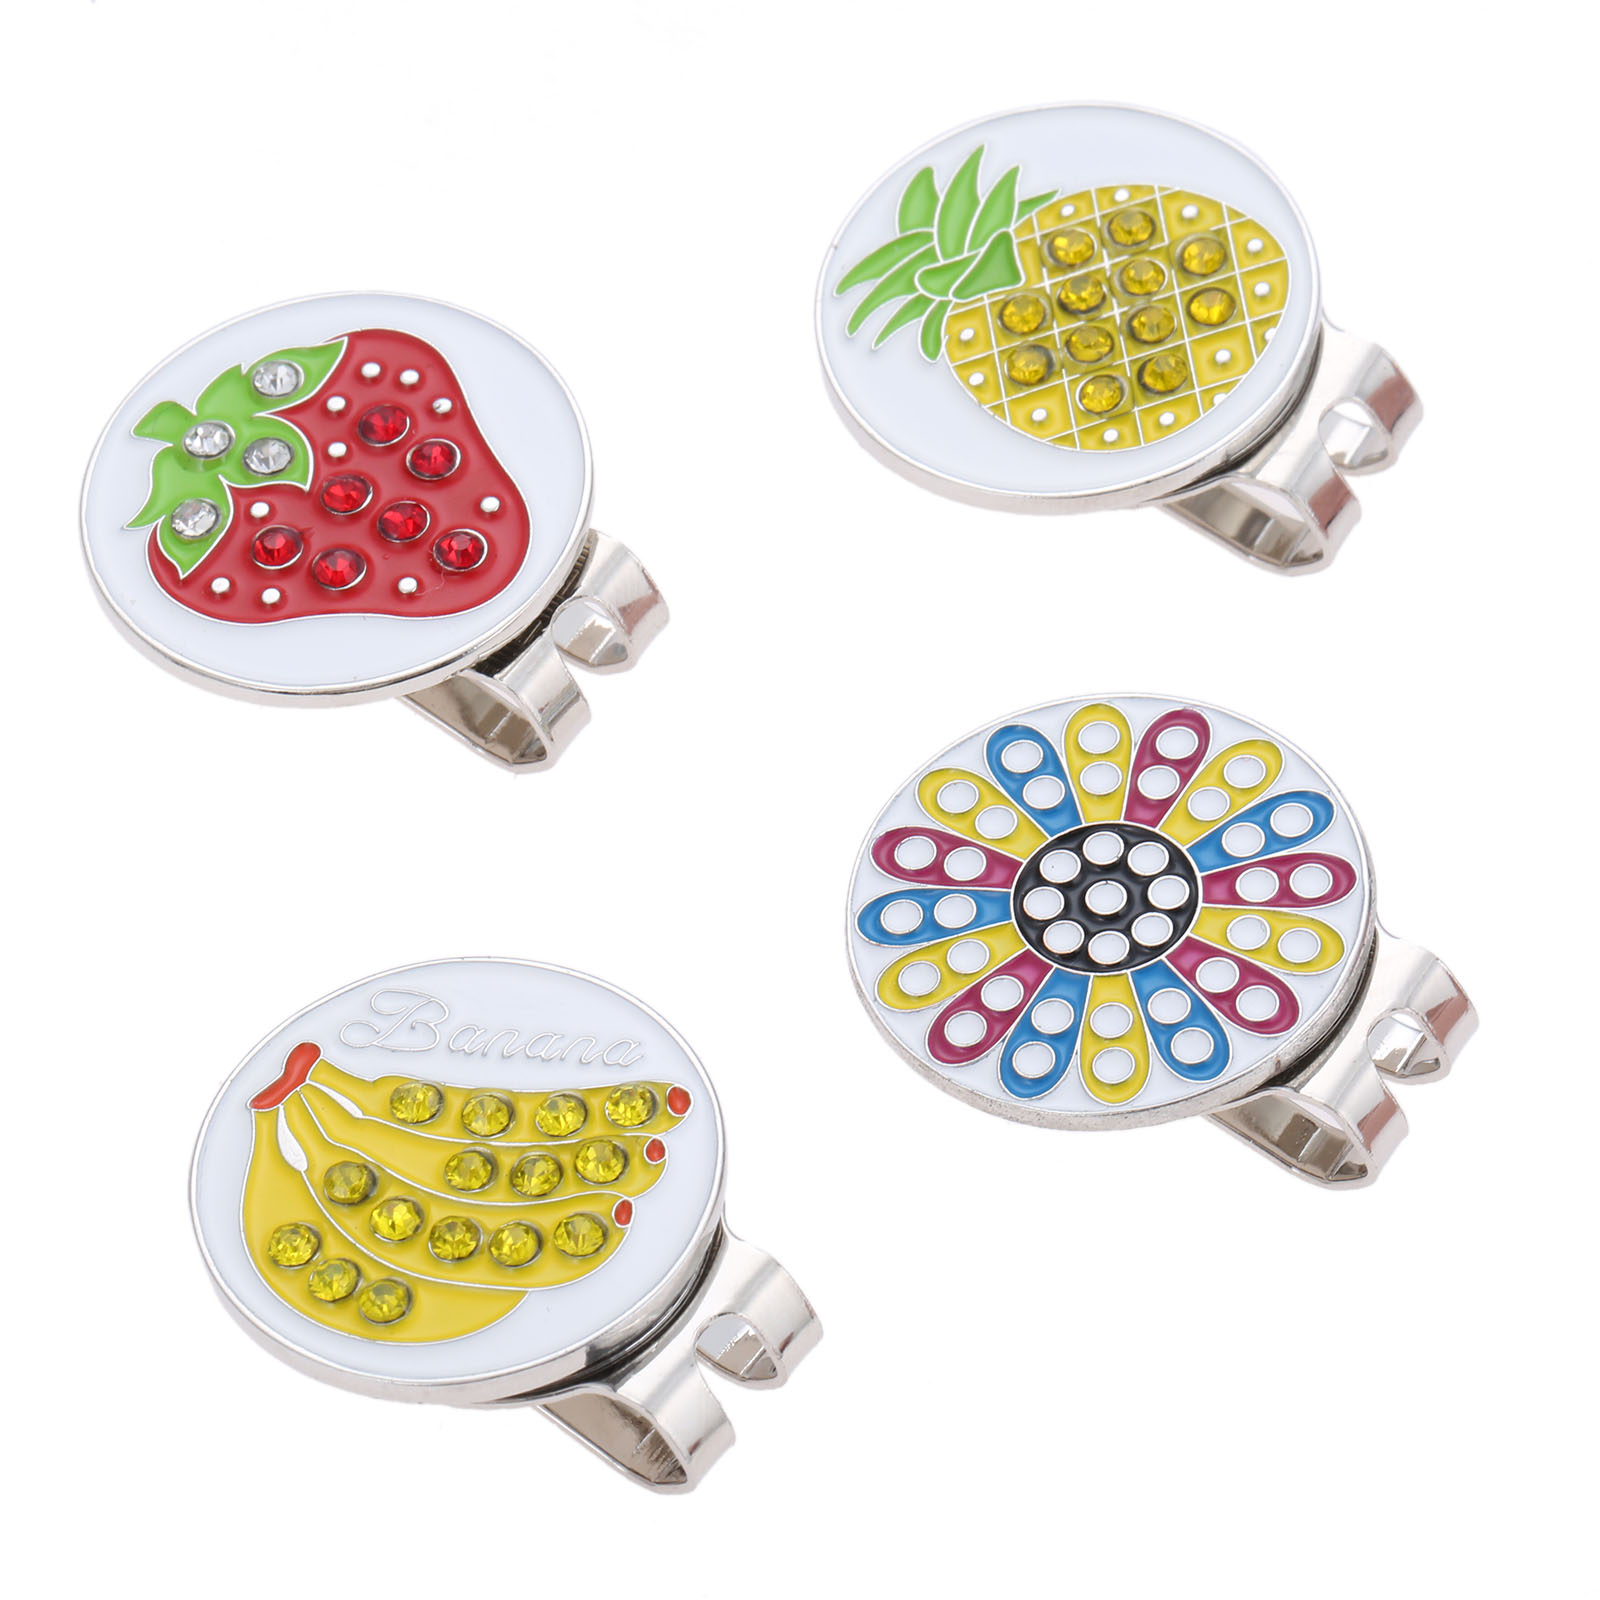 1Pc Zinc Alloy Bling Rhinestone Flower Fruit Pattern Golf Ball Aiming Marker Alignment Tool & Golf Hat Clip Decoration Cap Clips